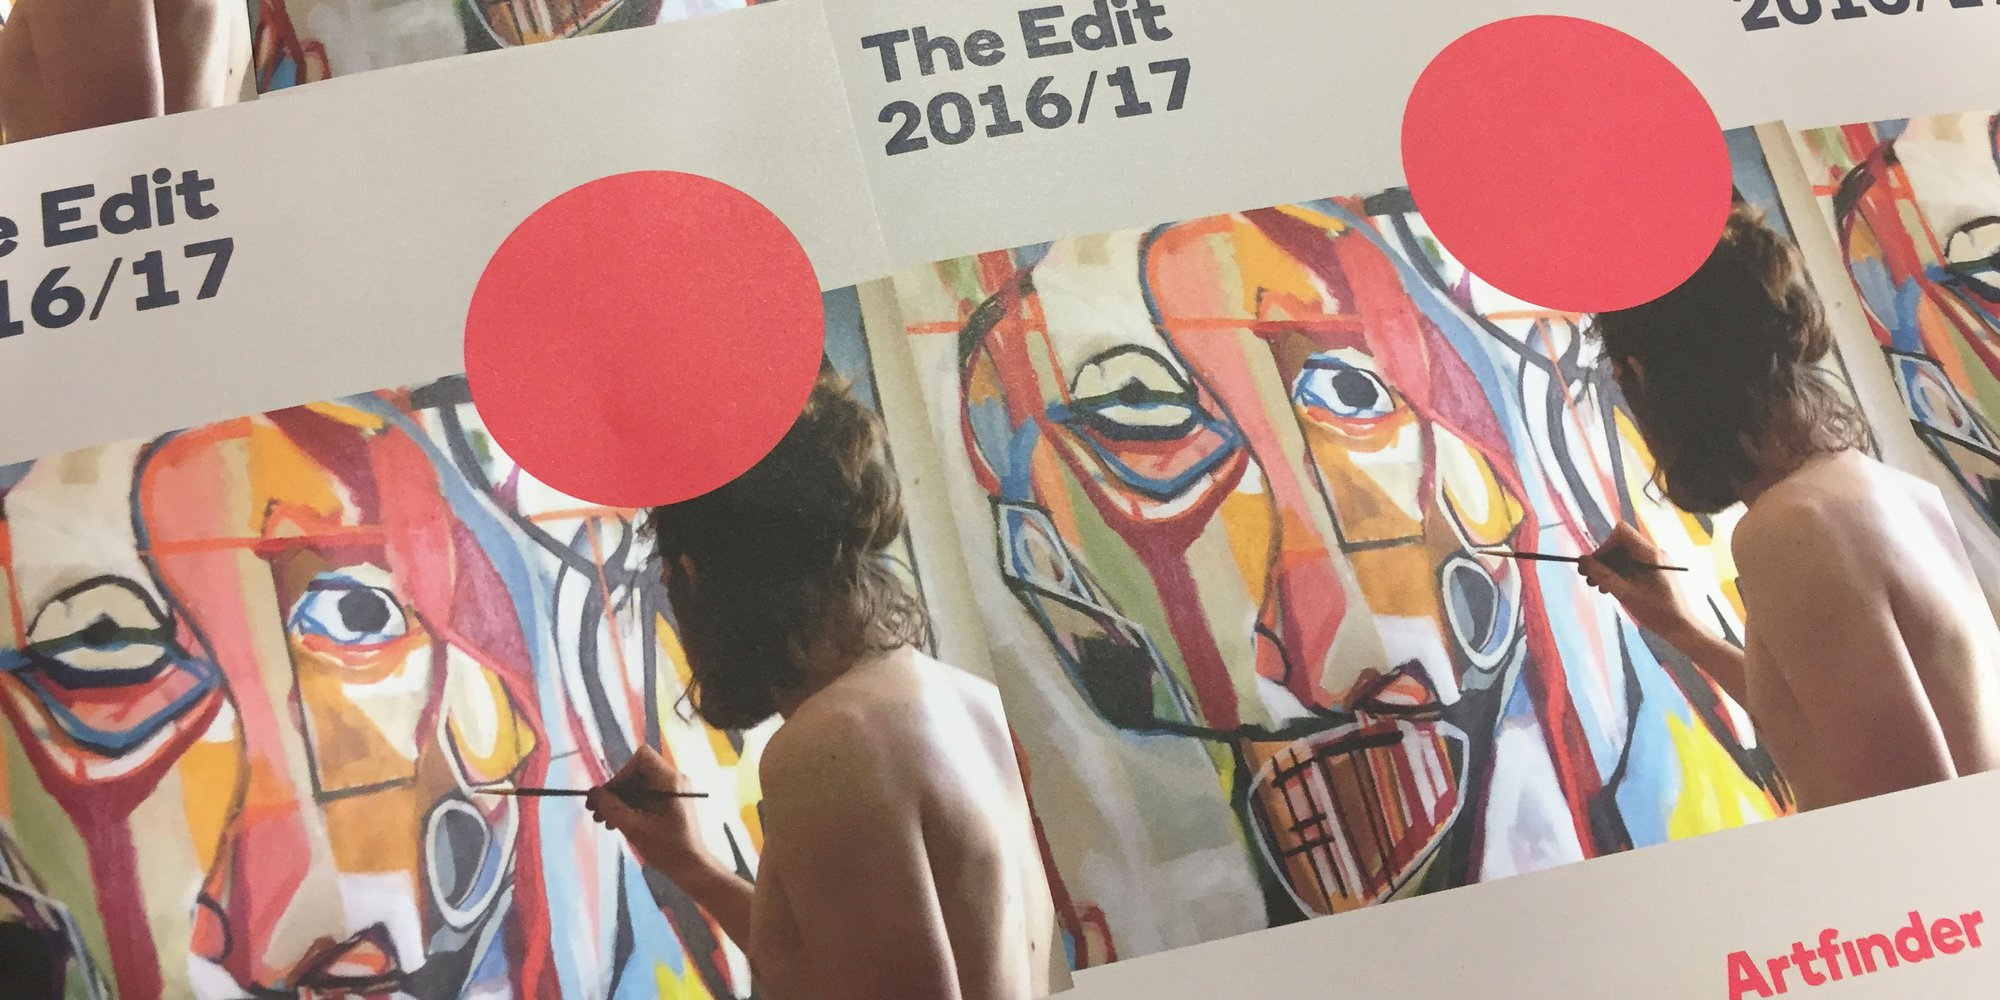 The new look Artfinder Catalogue A.K.A. The Edit 2016/17 is here.